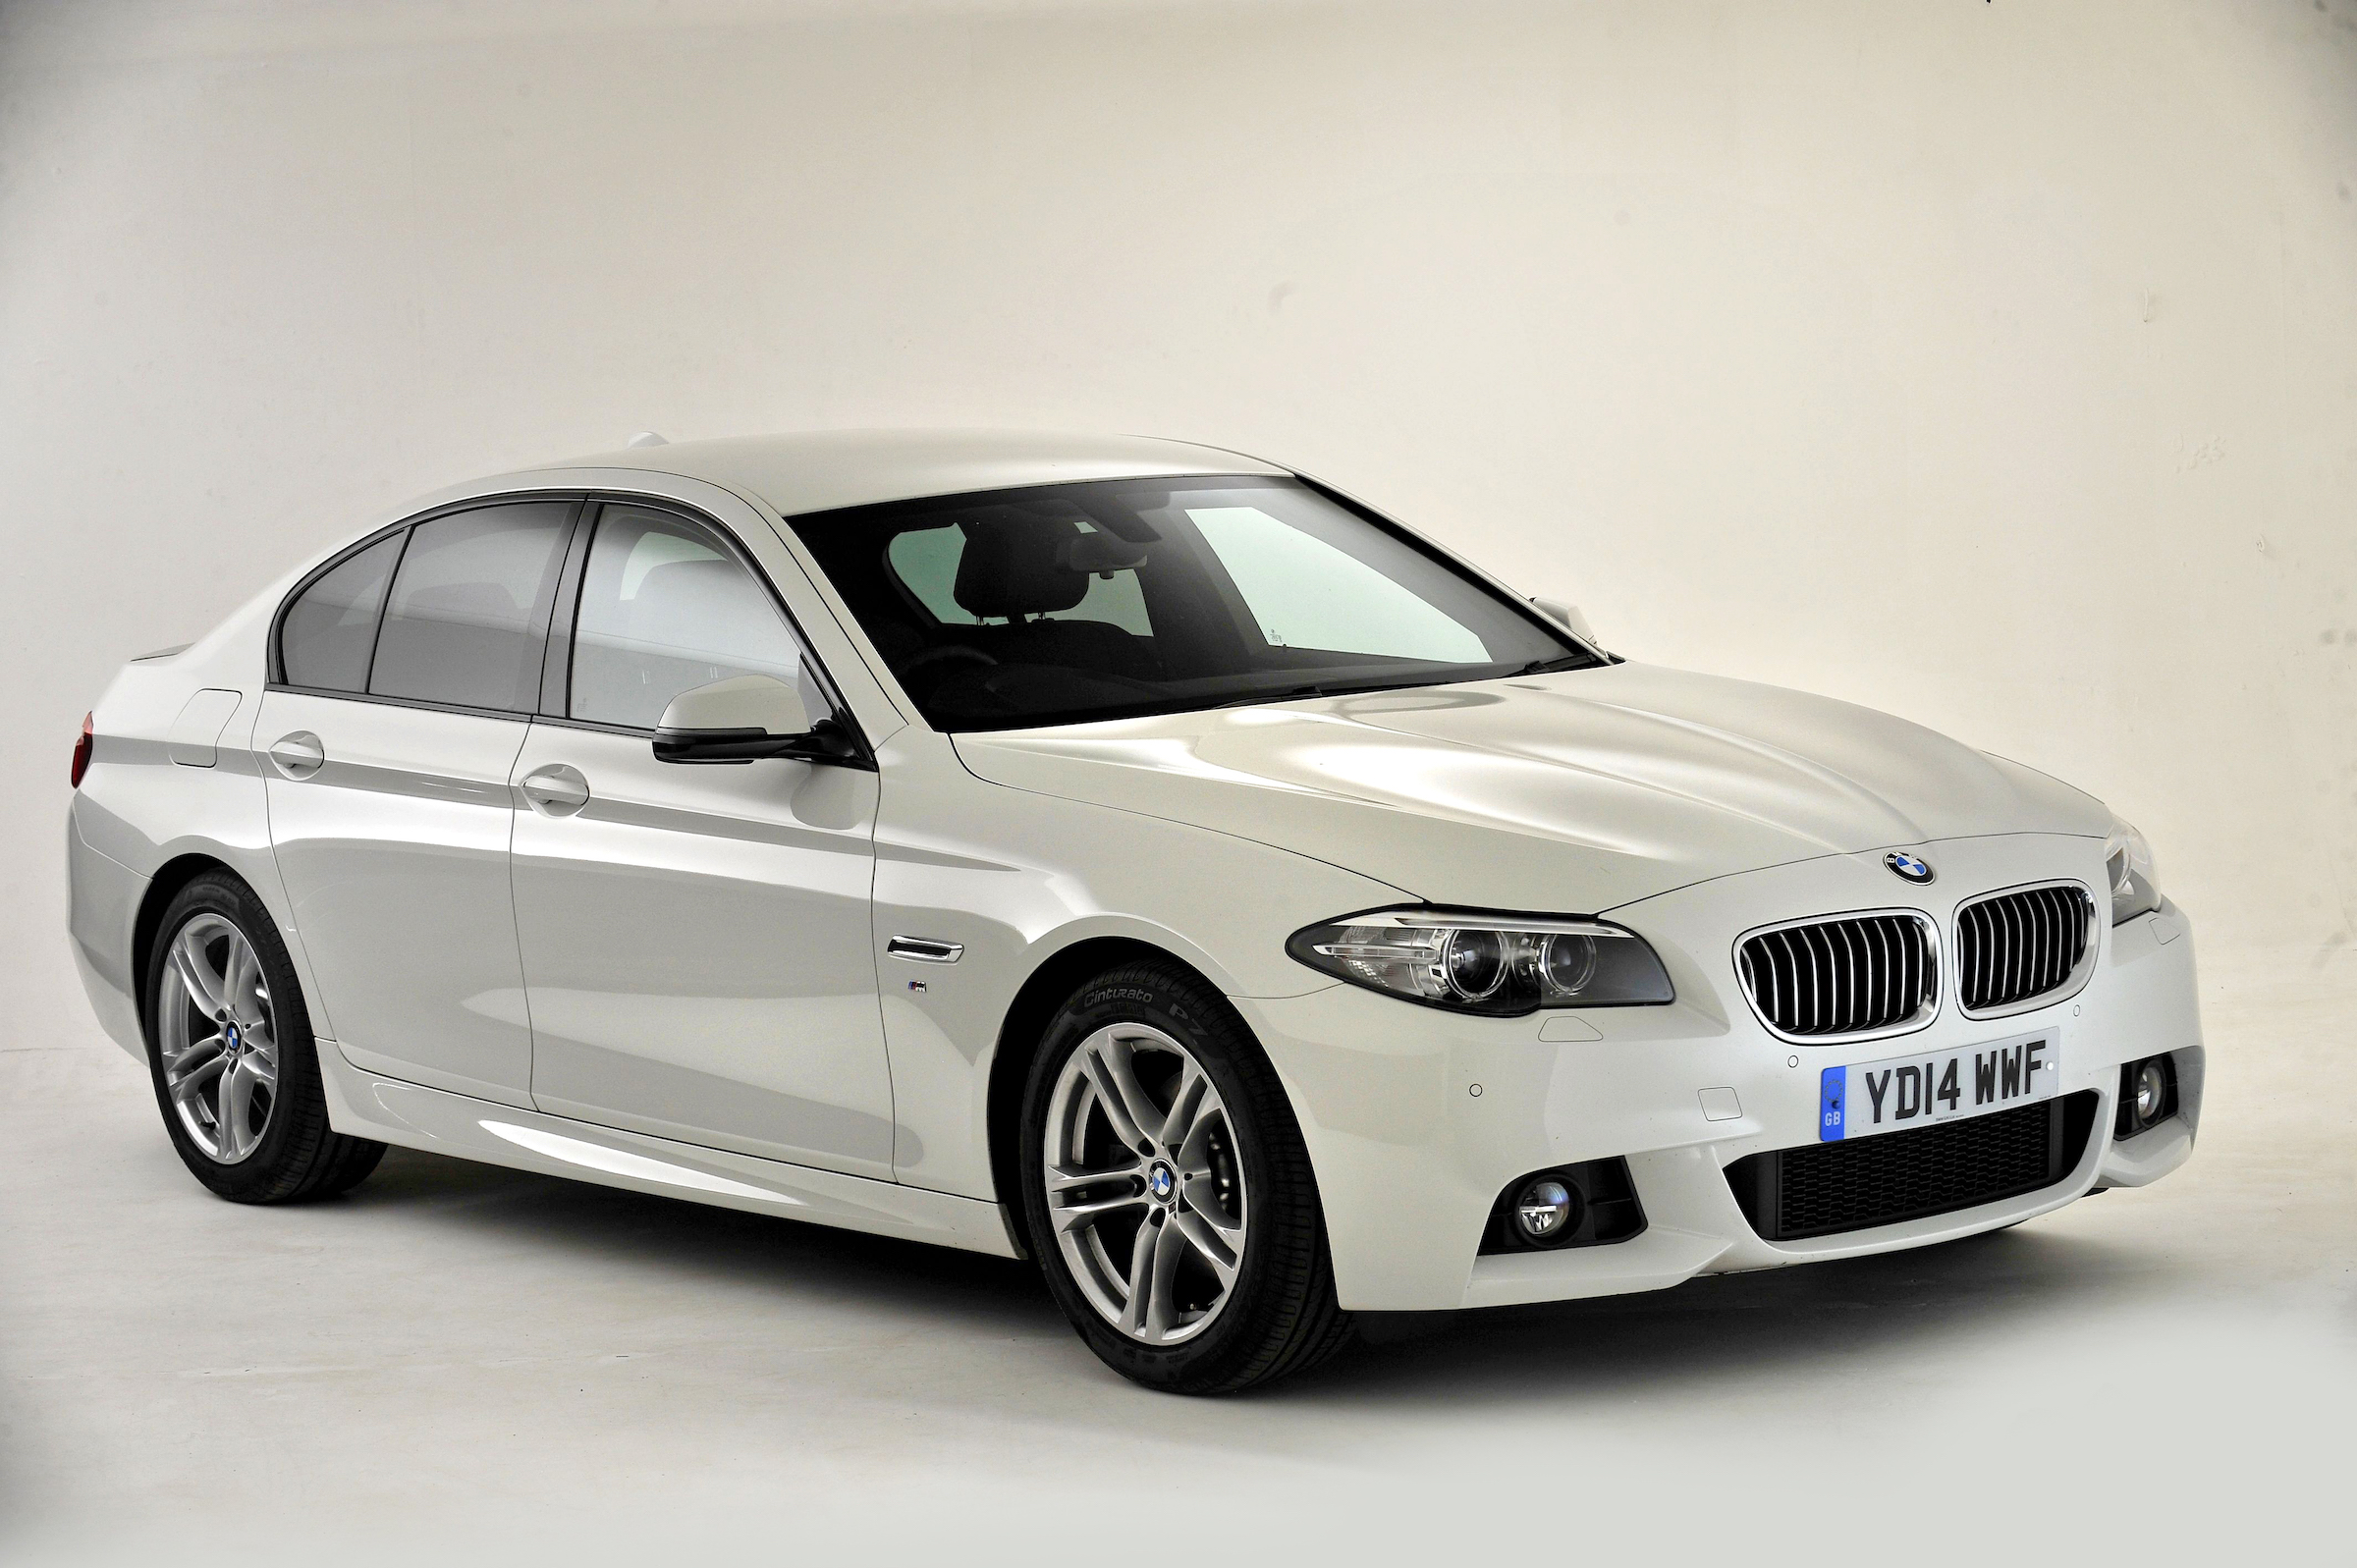 Used Bmw 5 Series Buying Guide 2010 2016 Mk6 Carbuyer